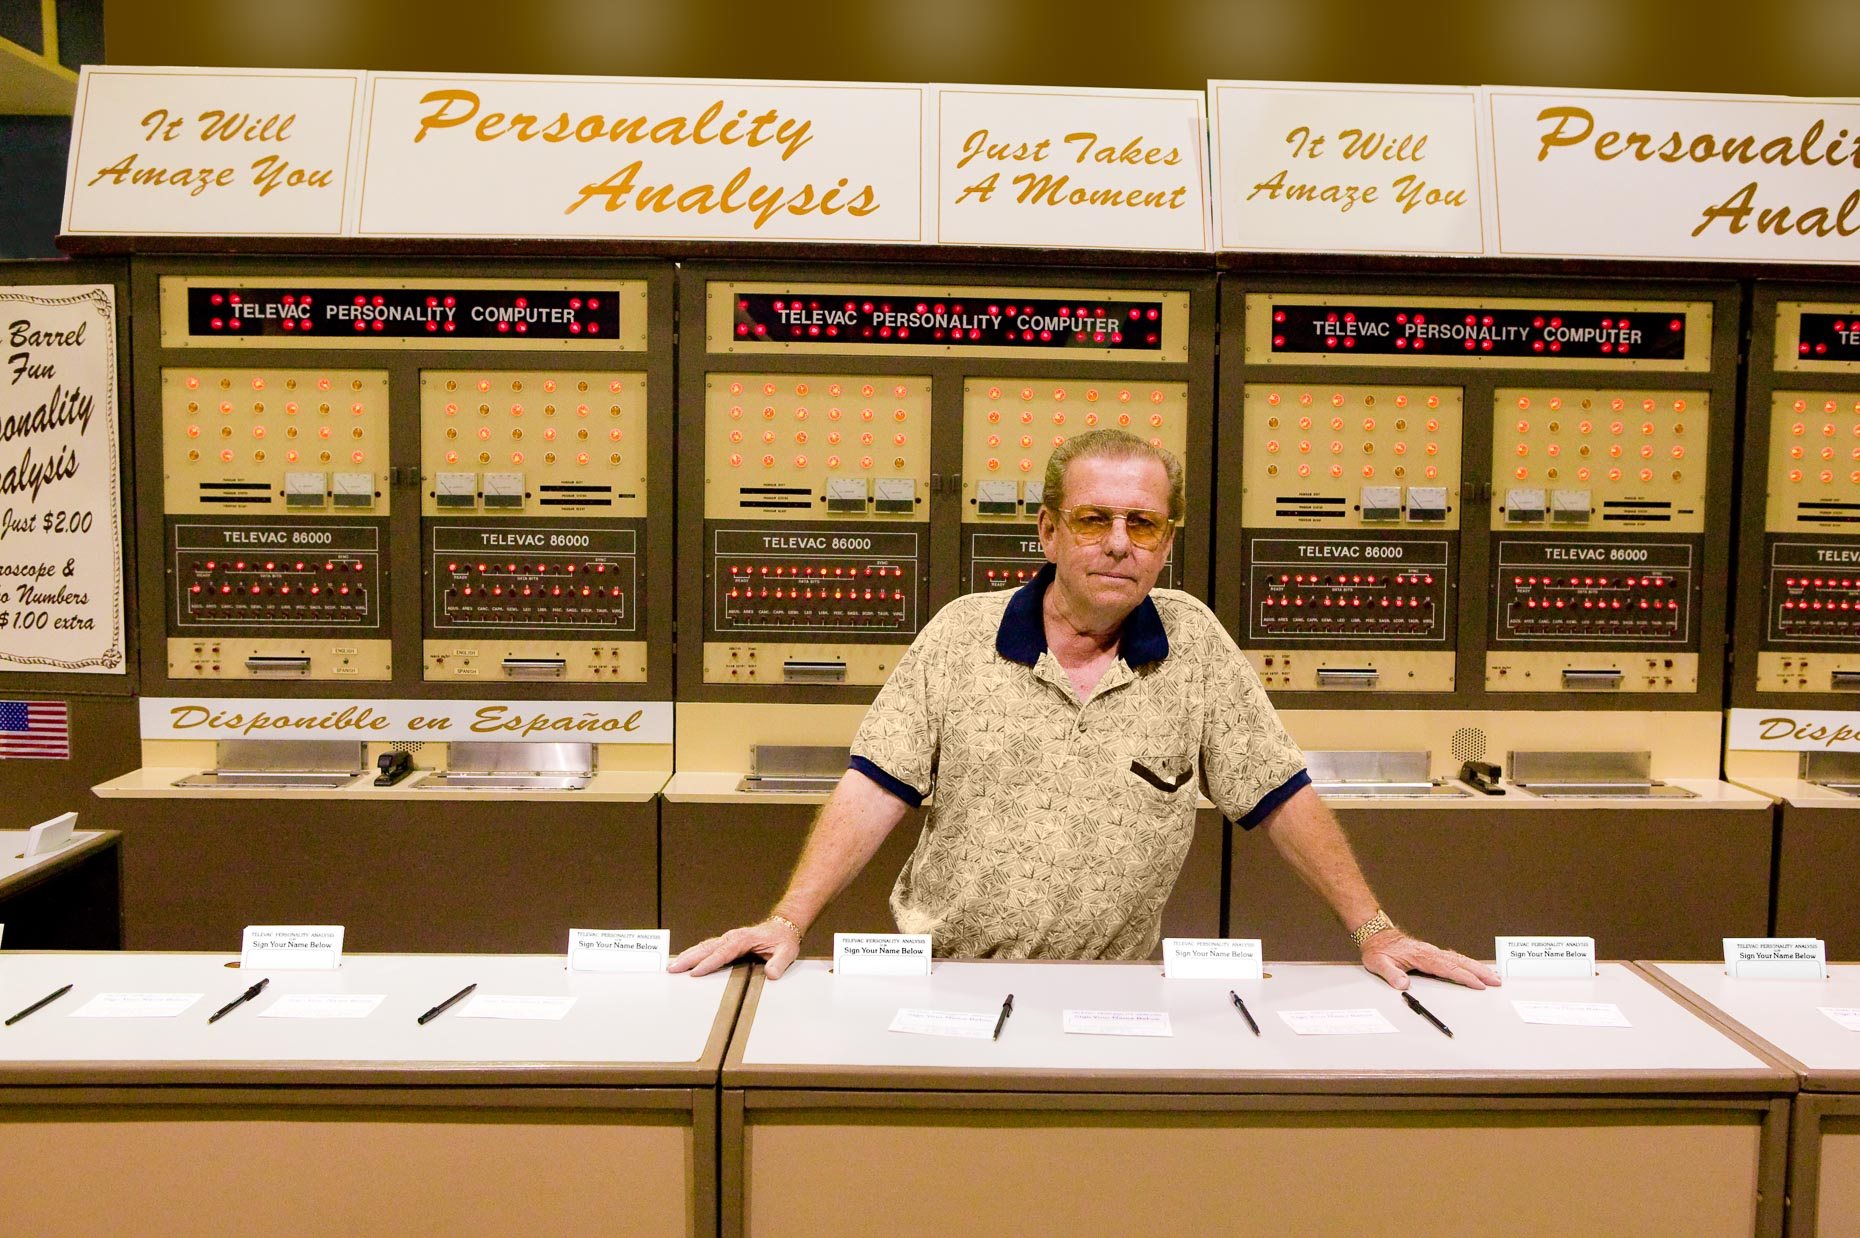 Portrait of man standing at county of handwriting analysis computer machine at Los Angeles County Fair in Pomona, California by David Zaitz